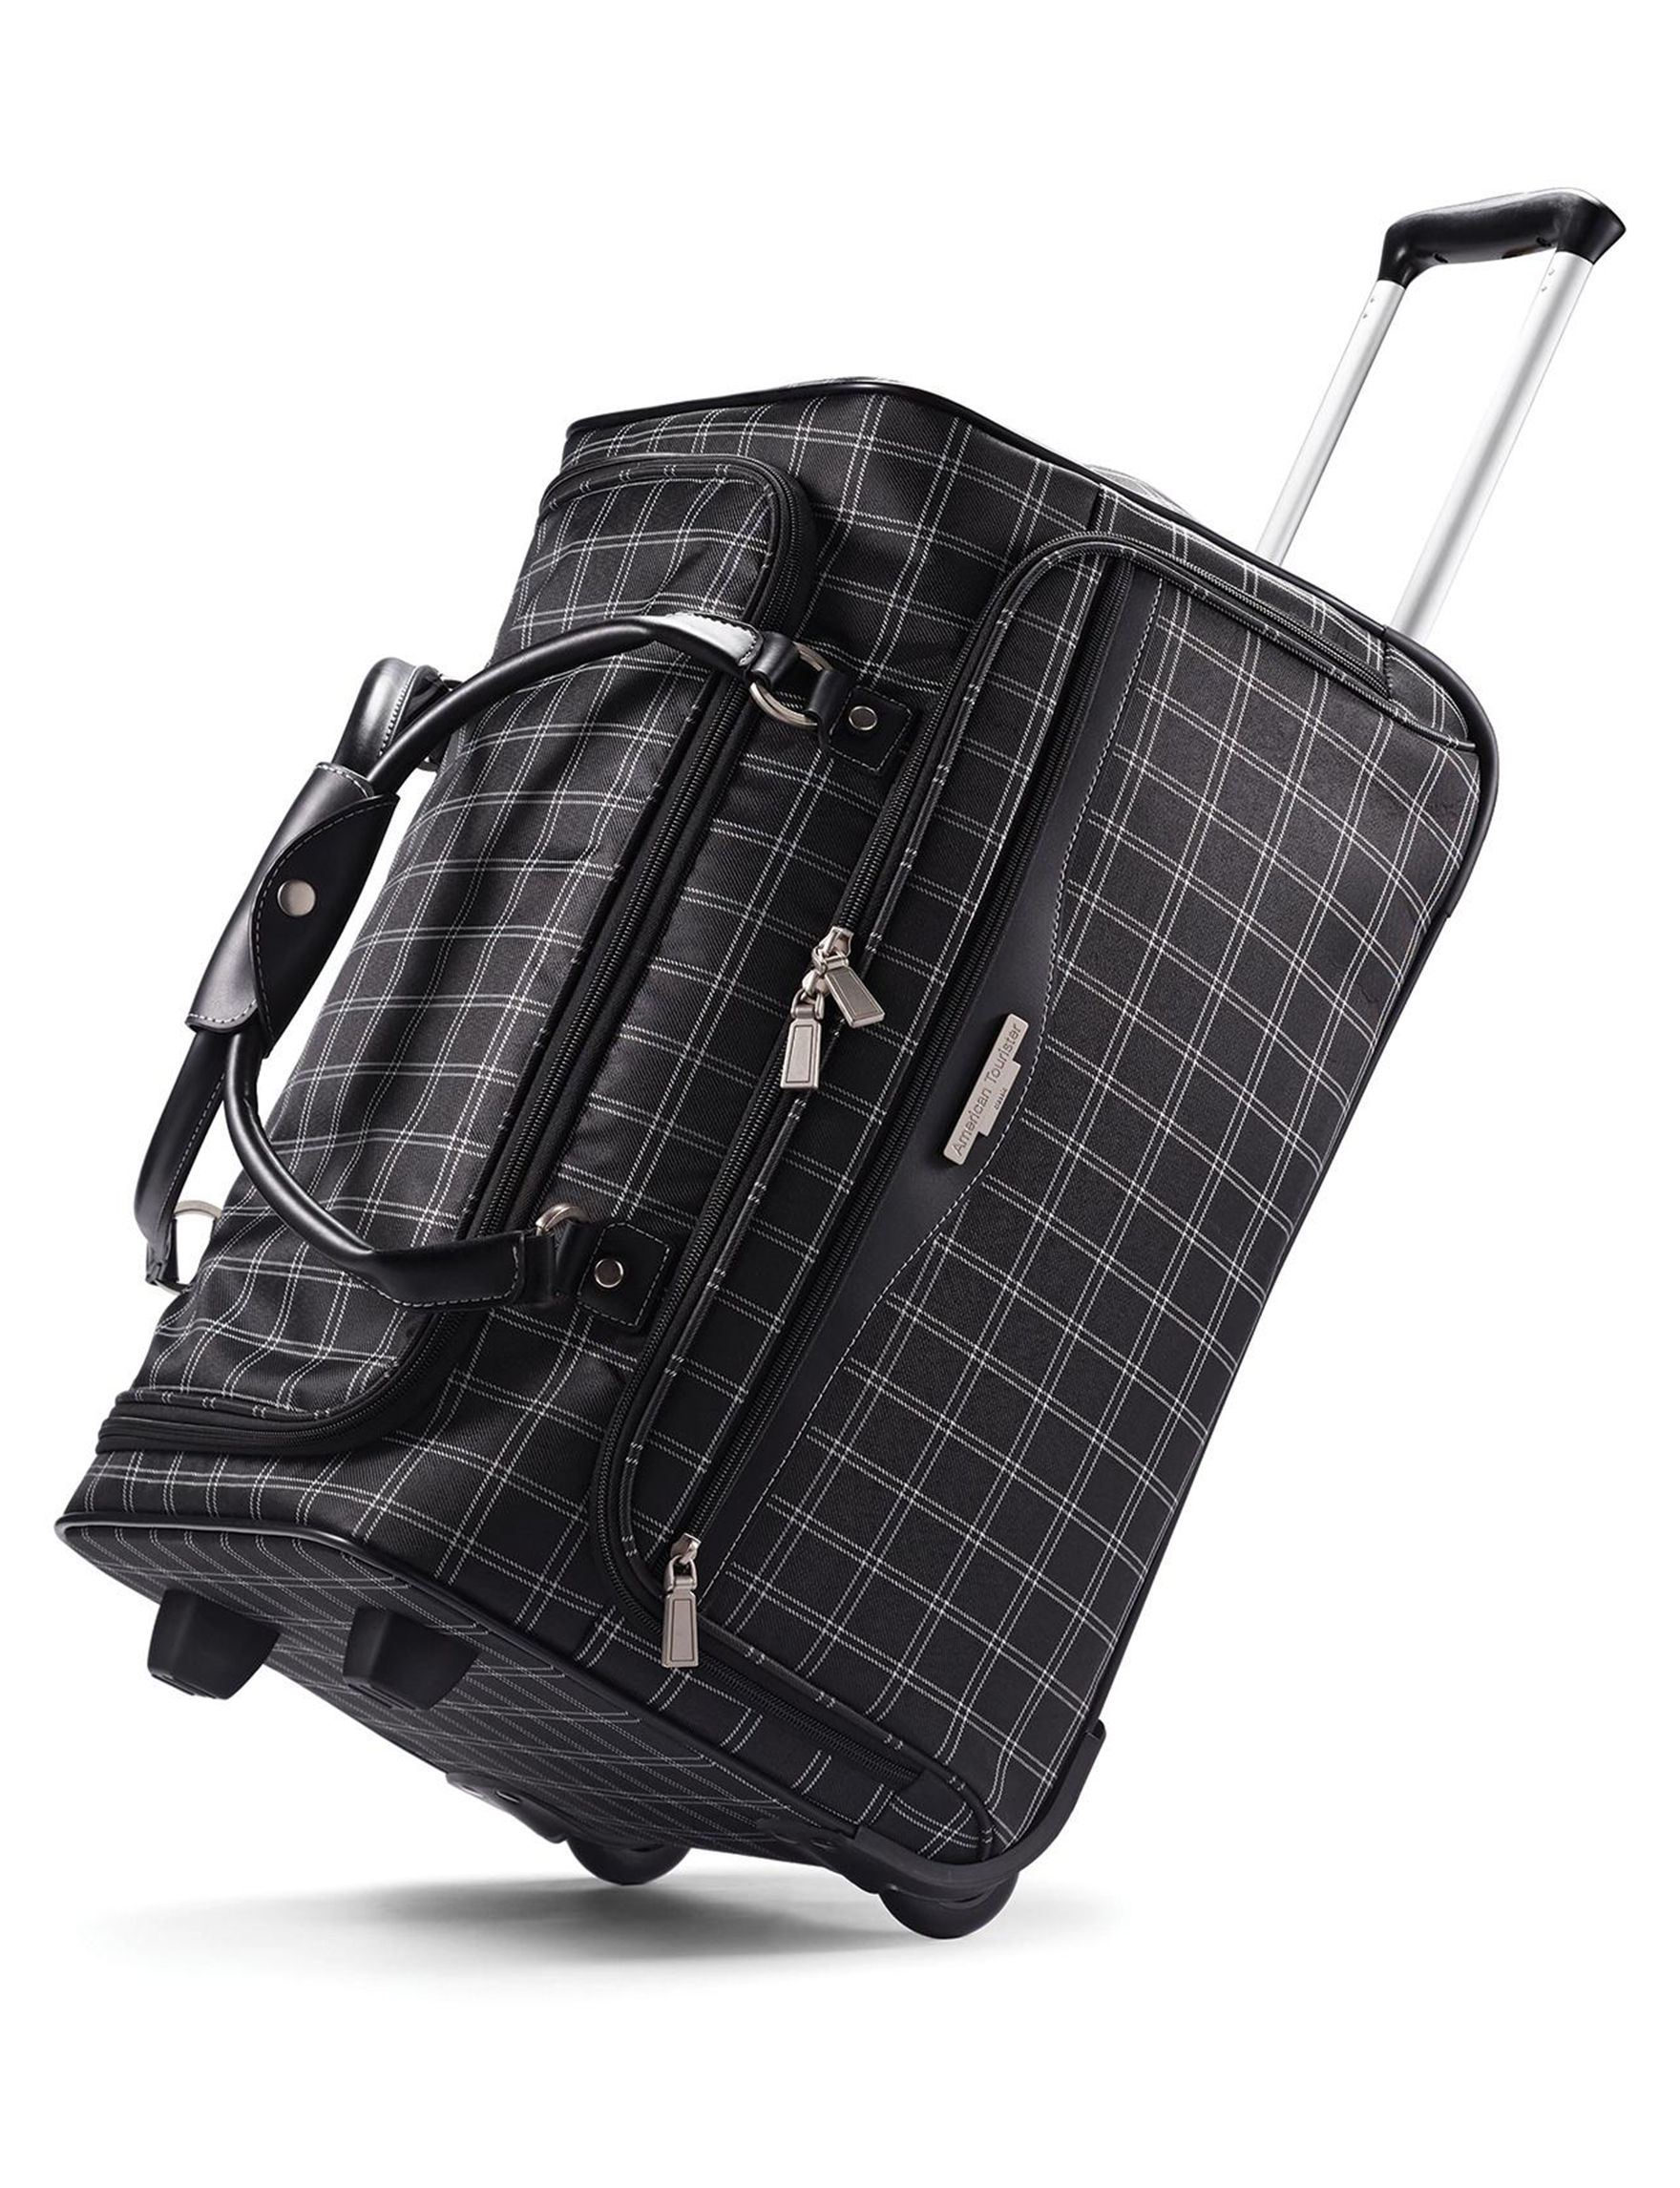 American Tourister Black Softside Duffle Bags Upright Spinners